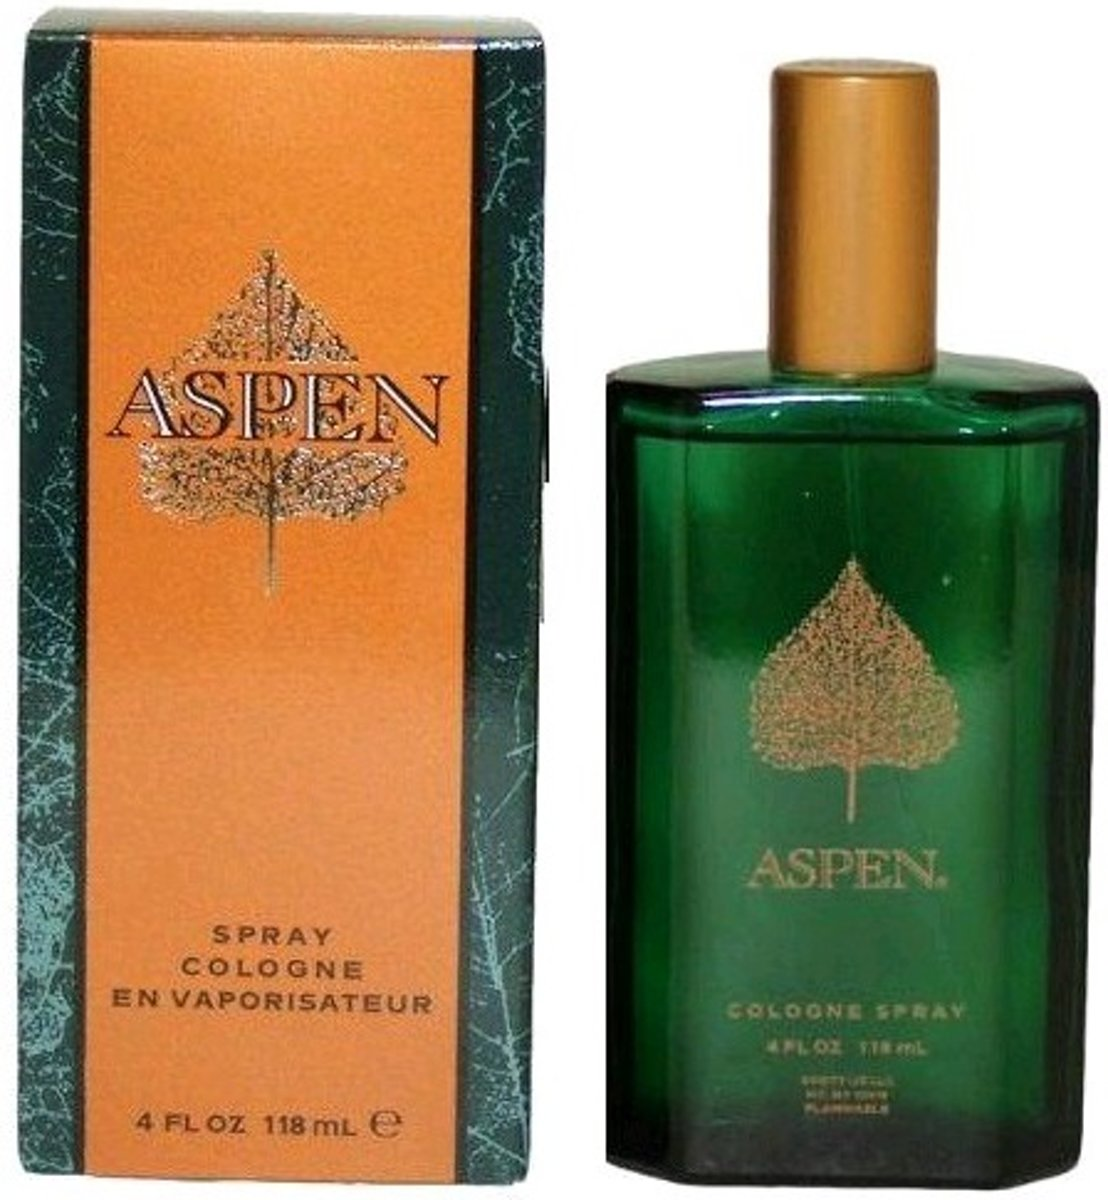 Aspen By Coty Cologne Spray 120 ml - Fragrances For Men